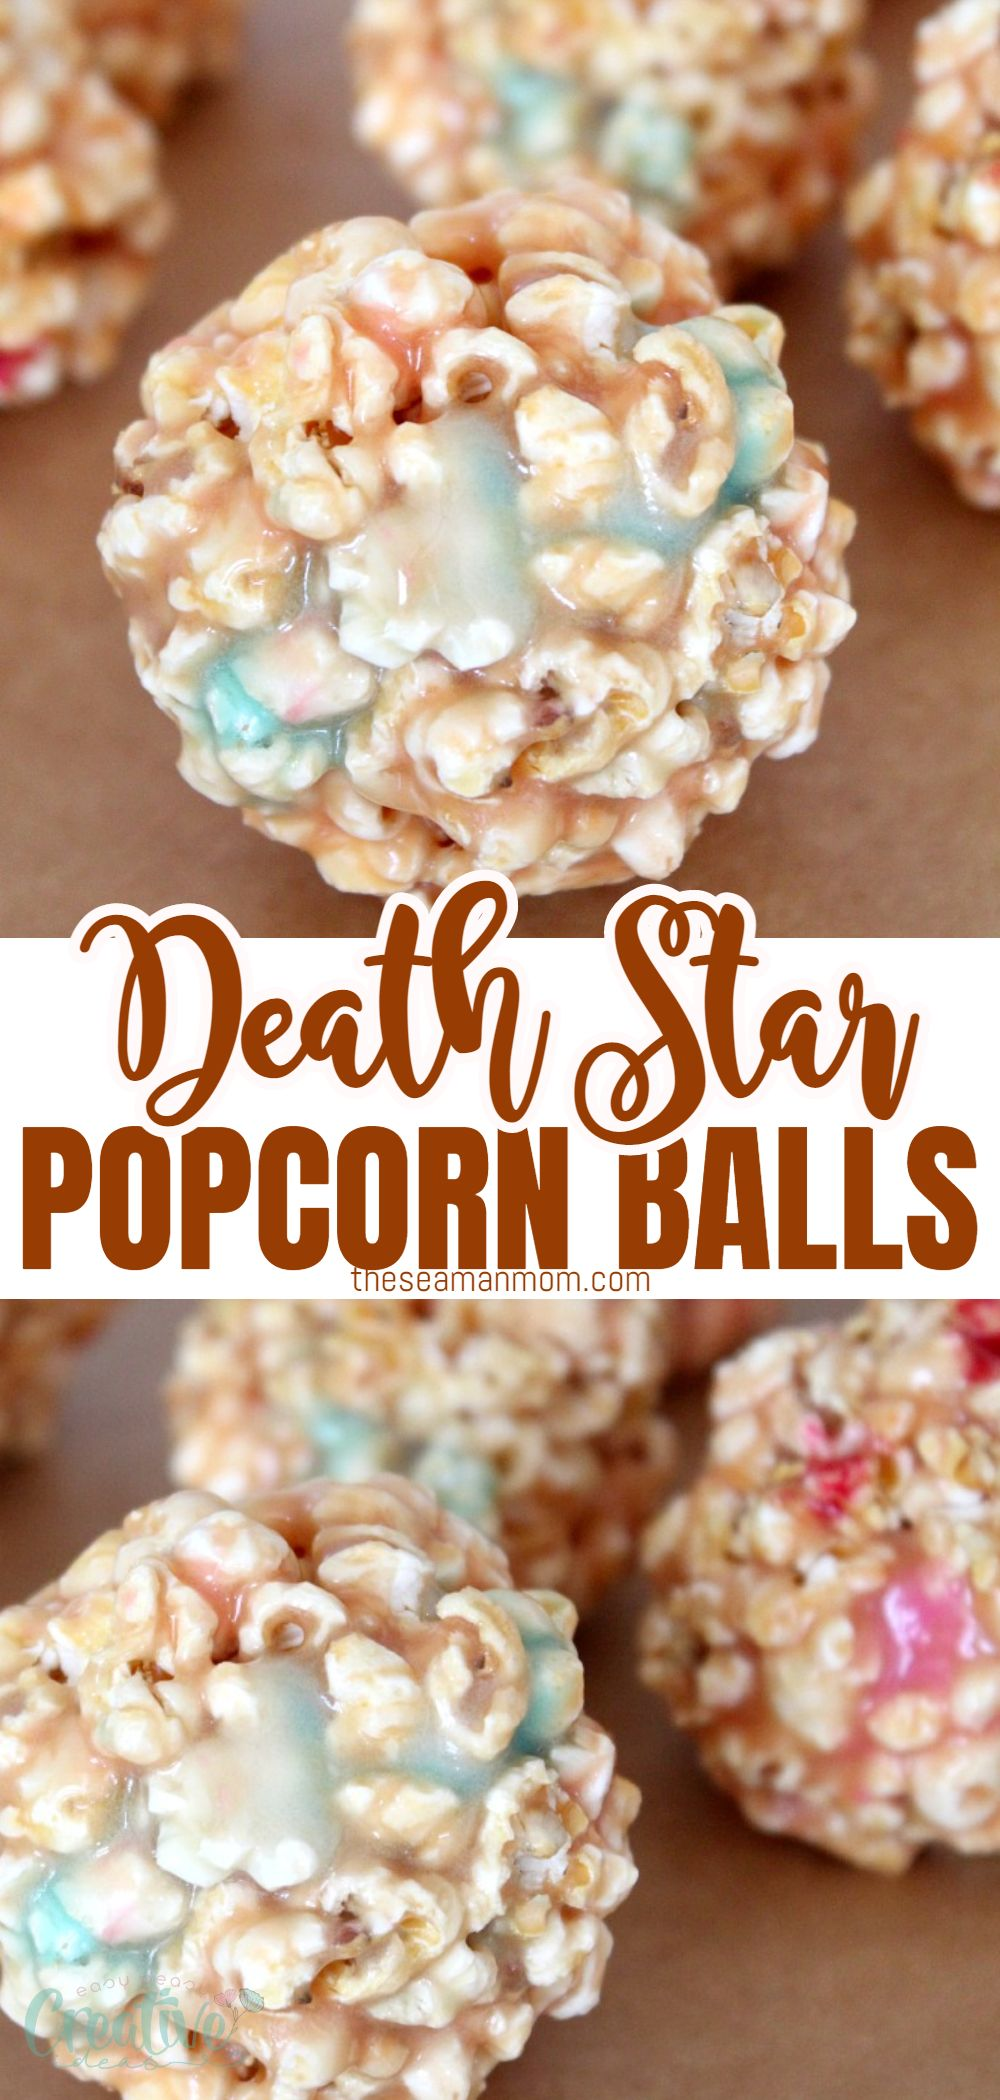 """These fun """"death Star"""" marshmallow popcorn balls are a delightful twist to your regular popcorn, thanks to those colorful, eye catching marshmallows! Perfect pair for a Star Wars movie night with the kiddos or just because! via @petroneagu"""